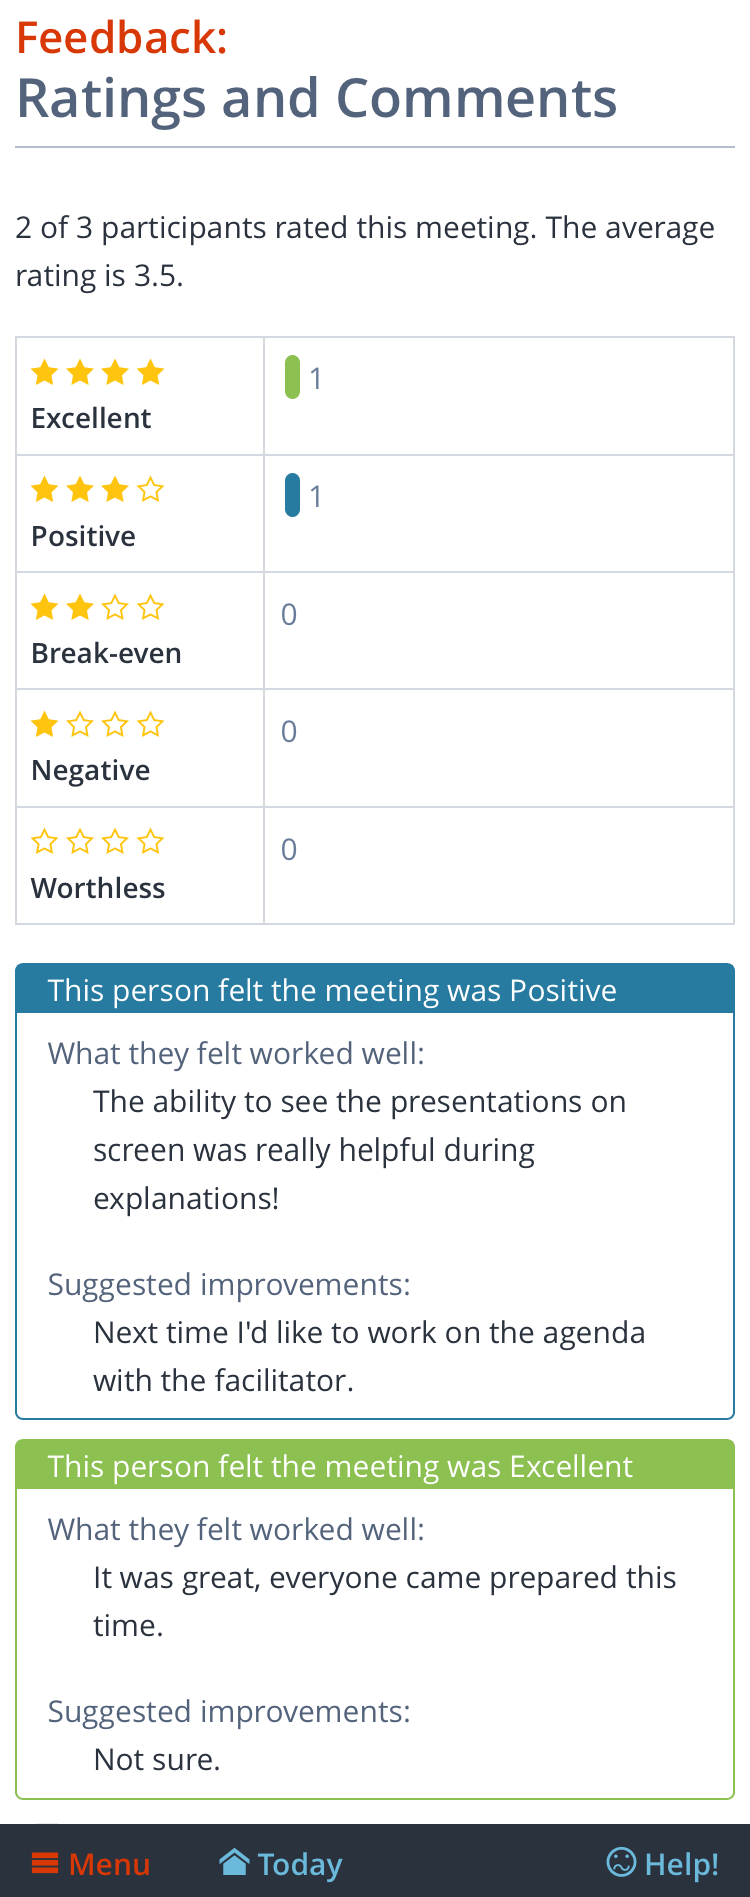 Mobile screenshot: Meeting ratings and feedback shown after the meeting